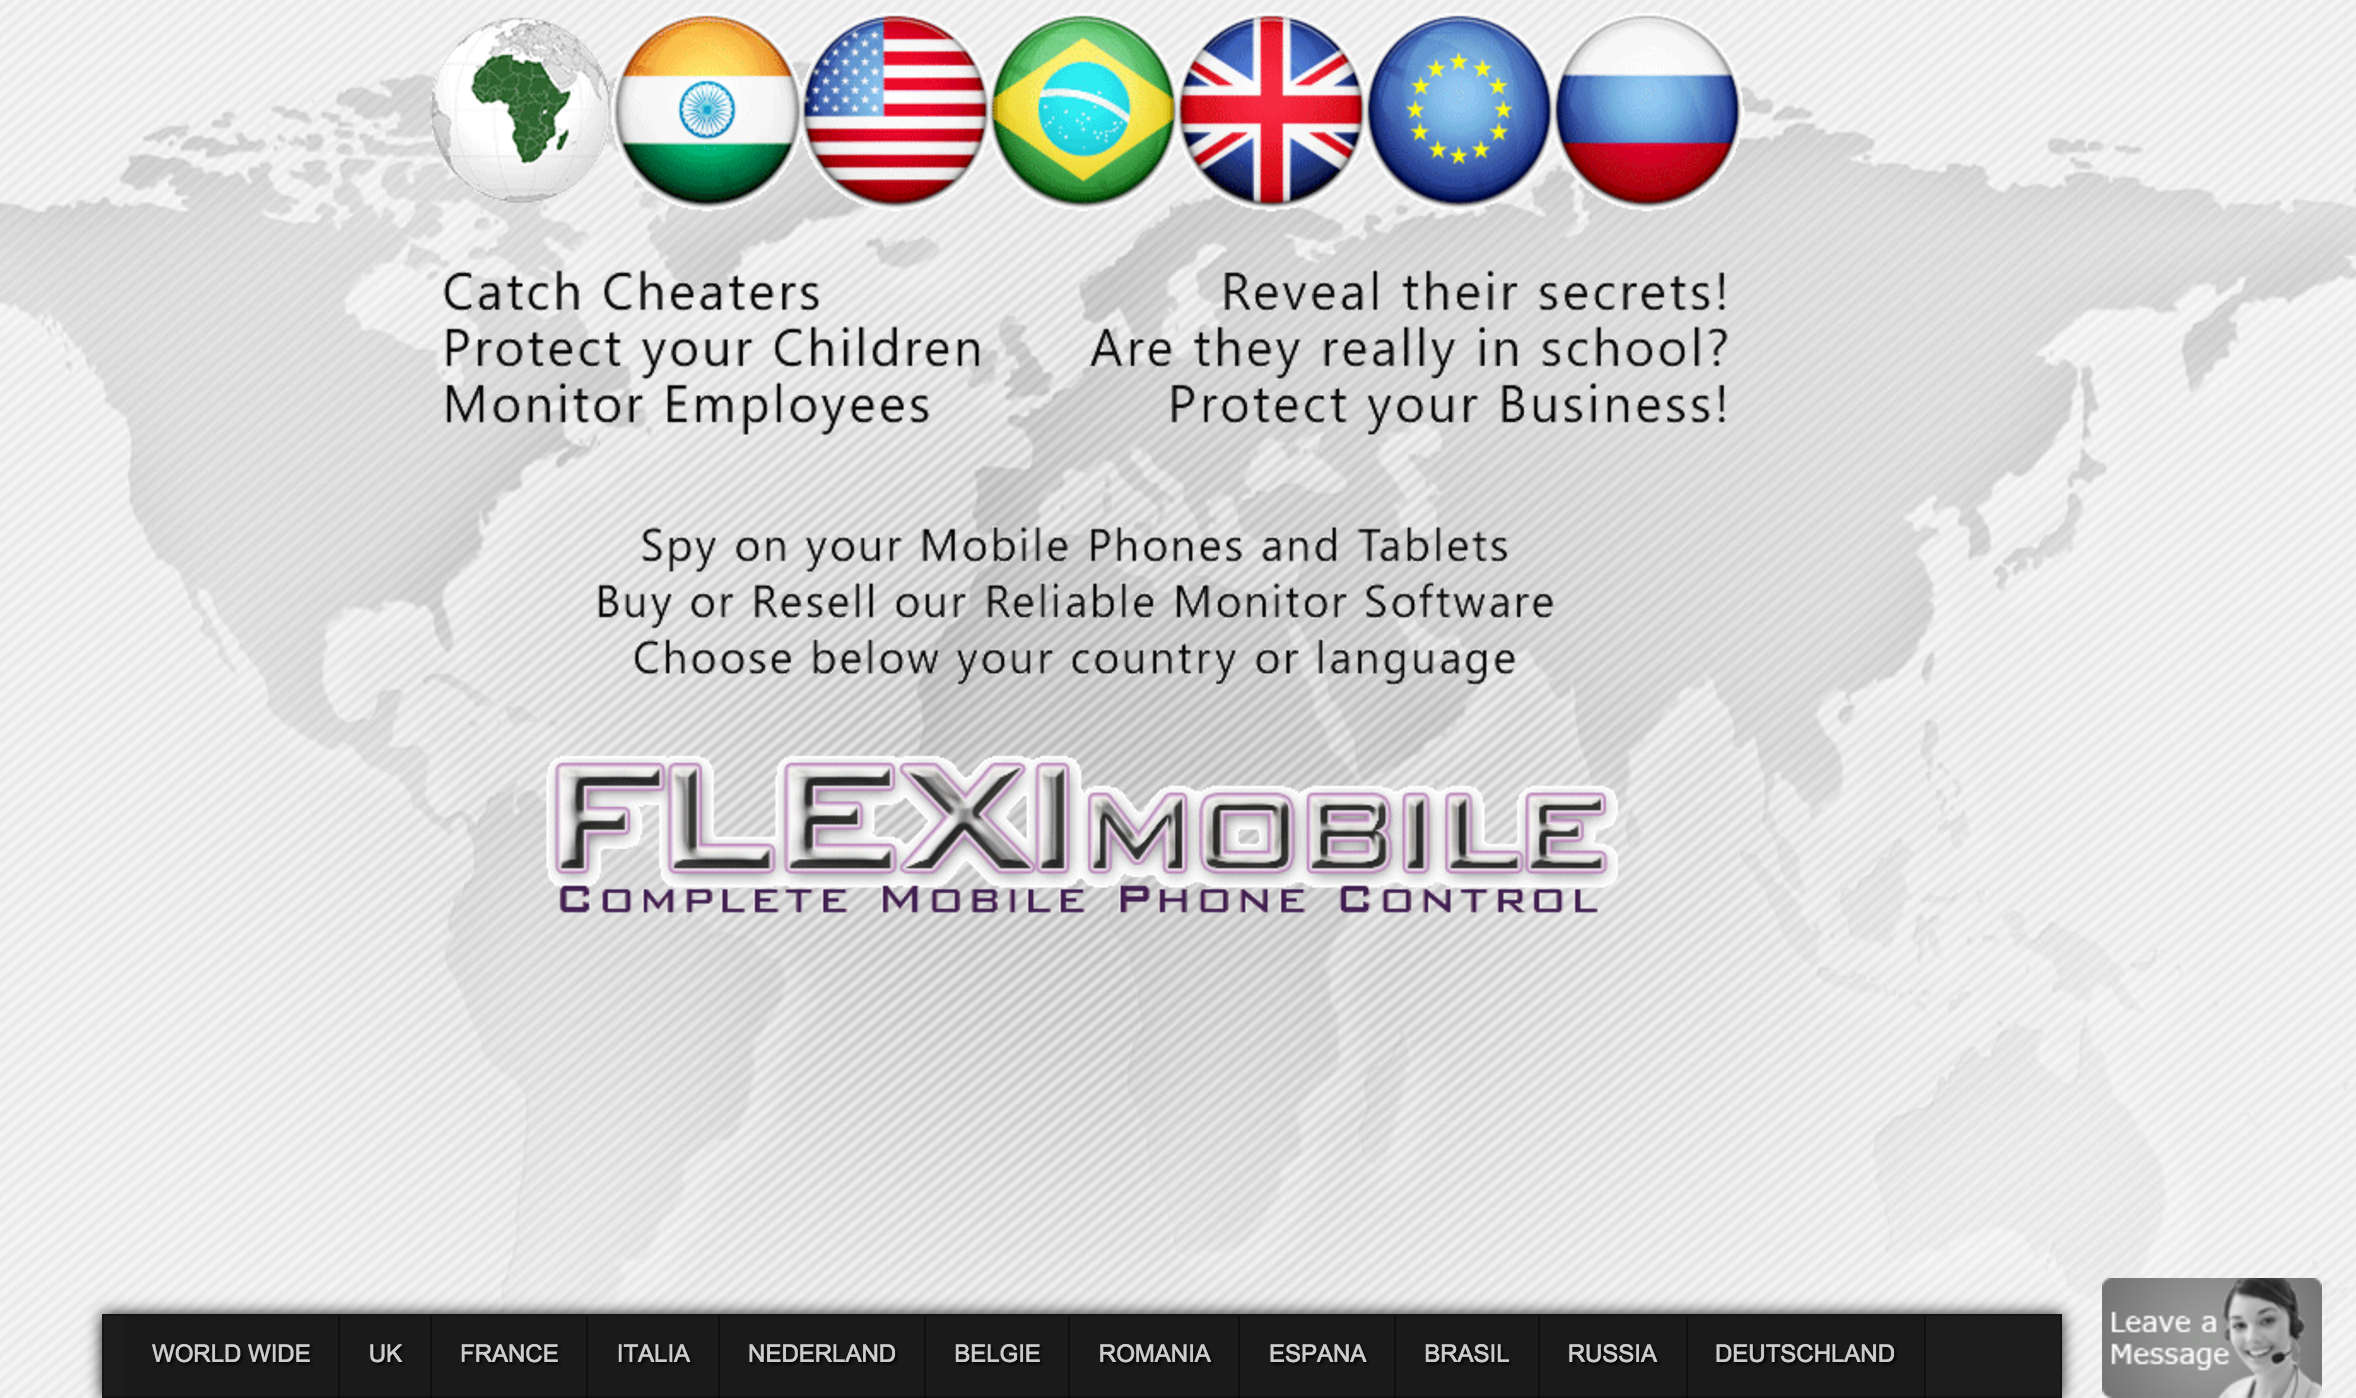 flexi-mobile.be